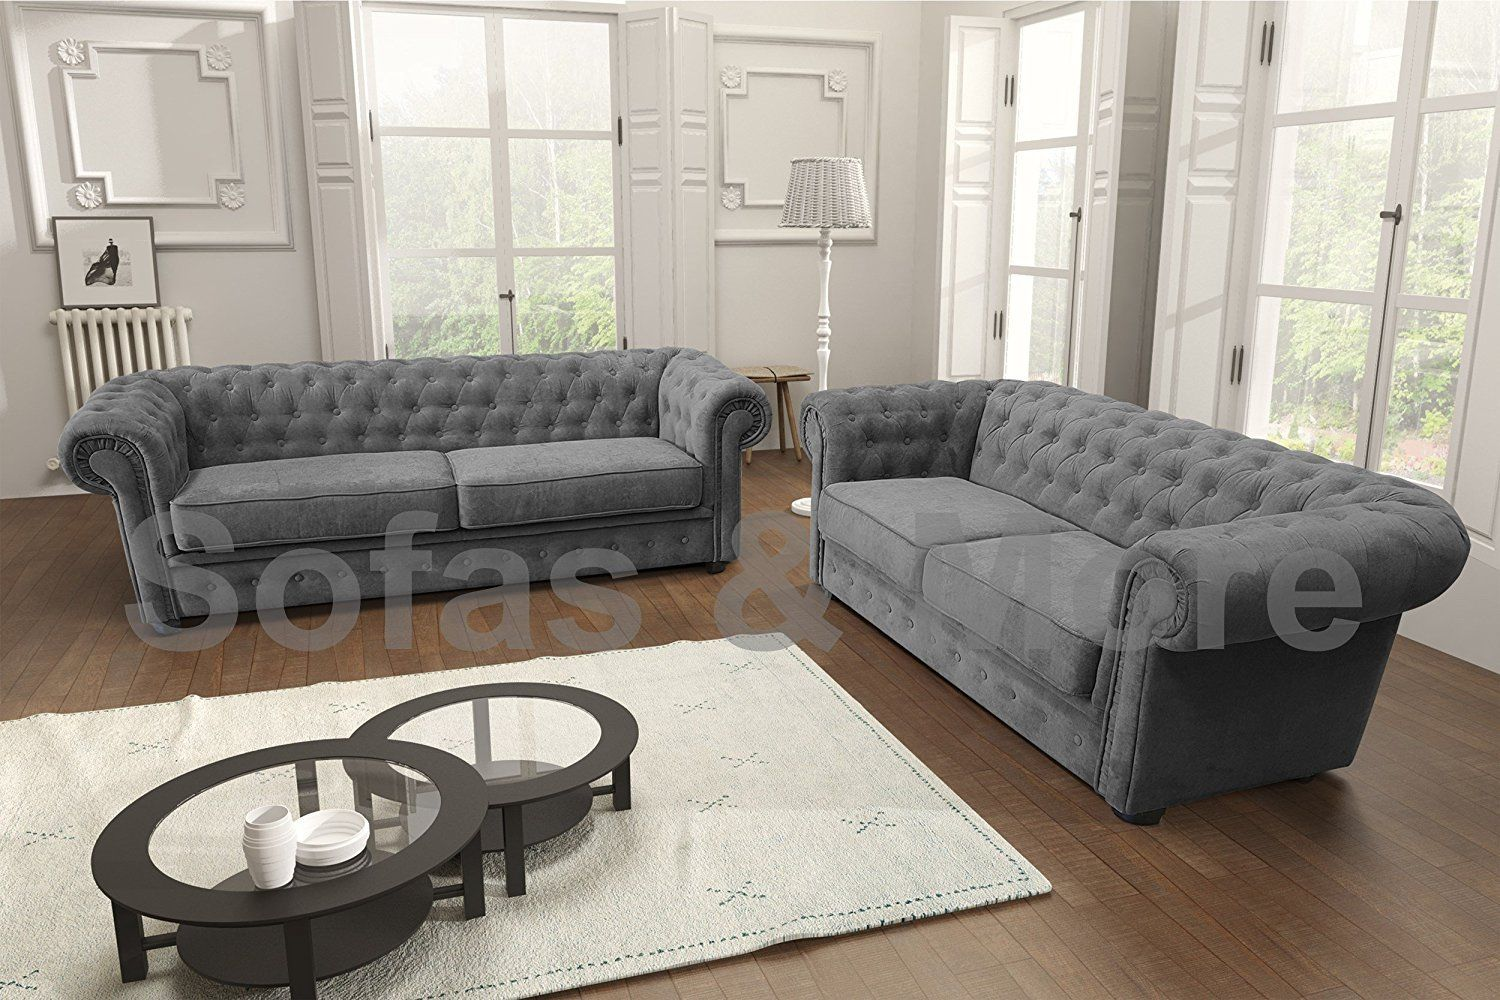 Sofa In Chesterfield Look Chesterfield Style Corner Sofa Set 3 2 Seater Armchair Grey Fabric